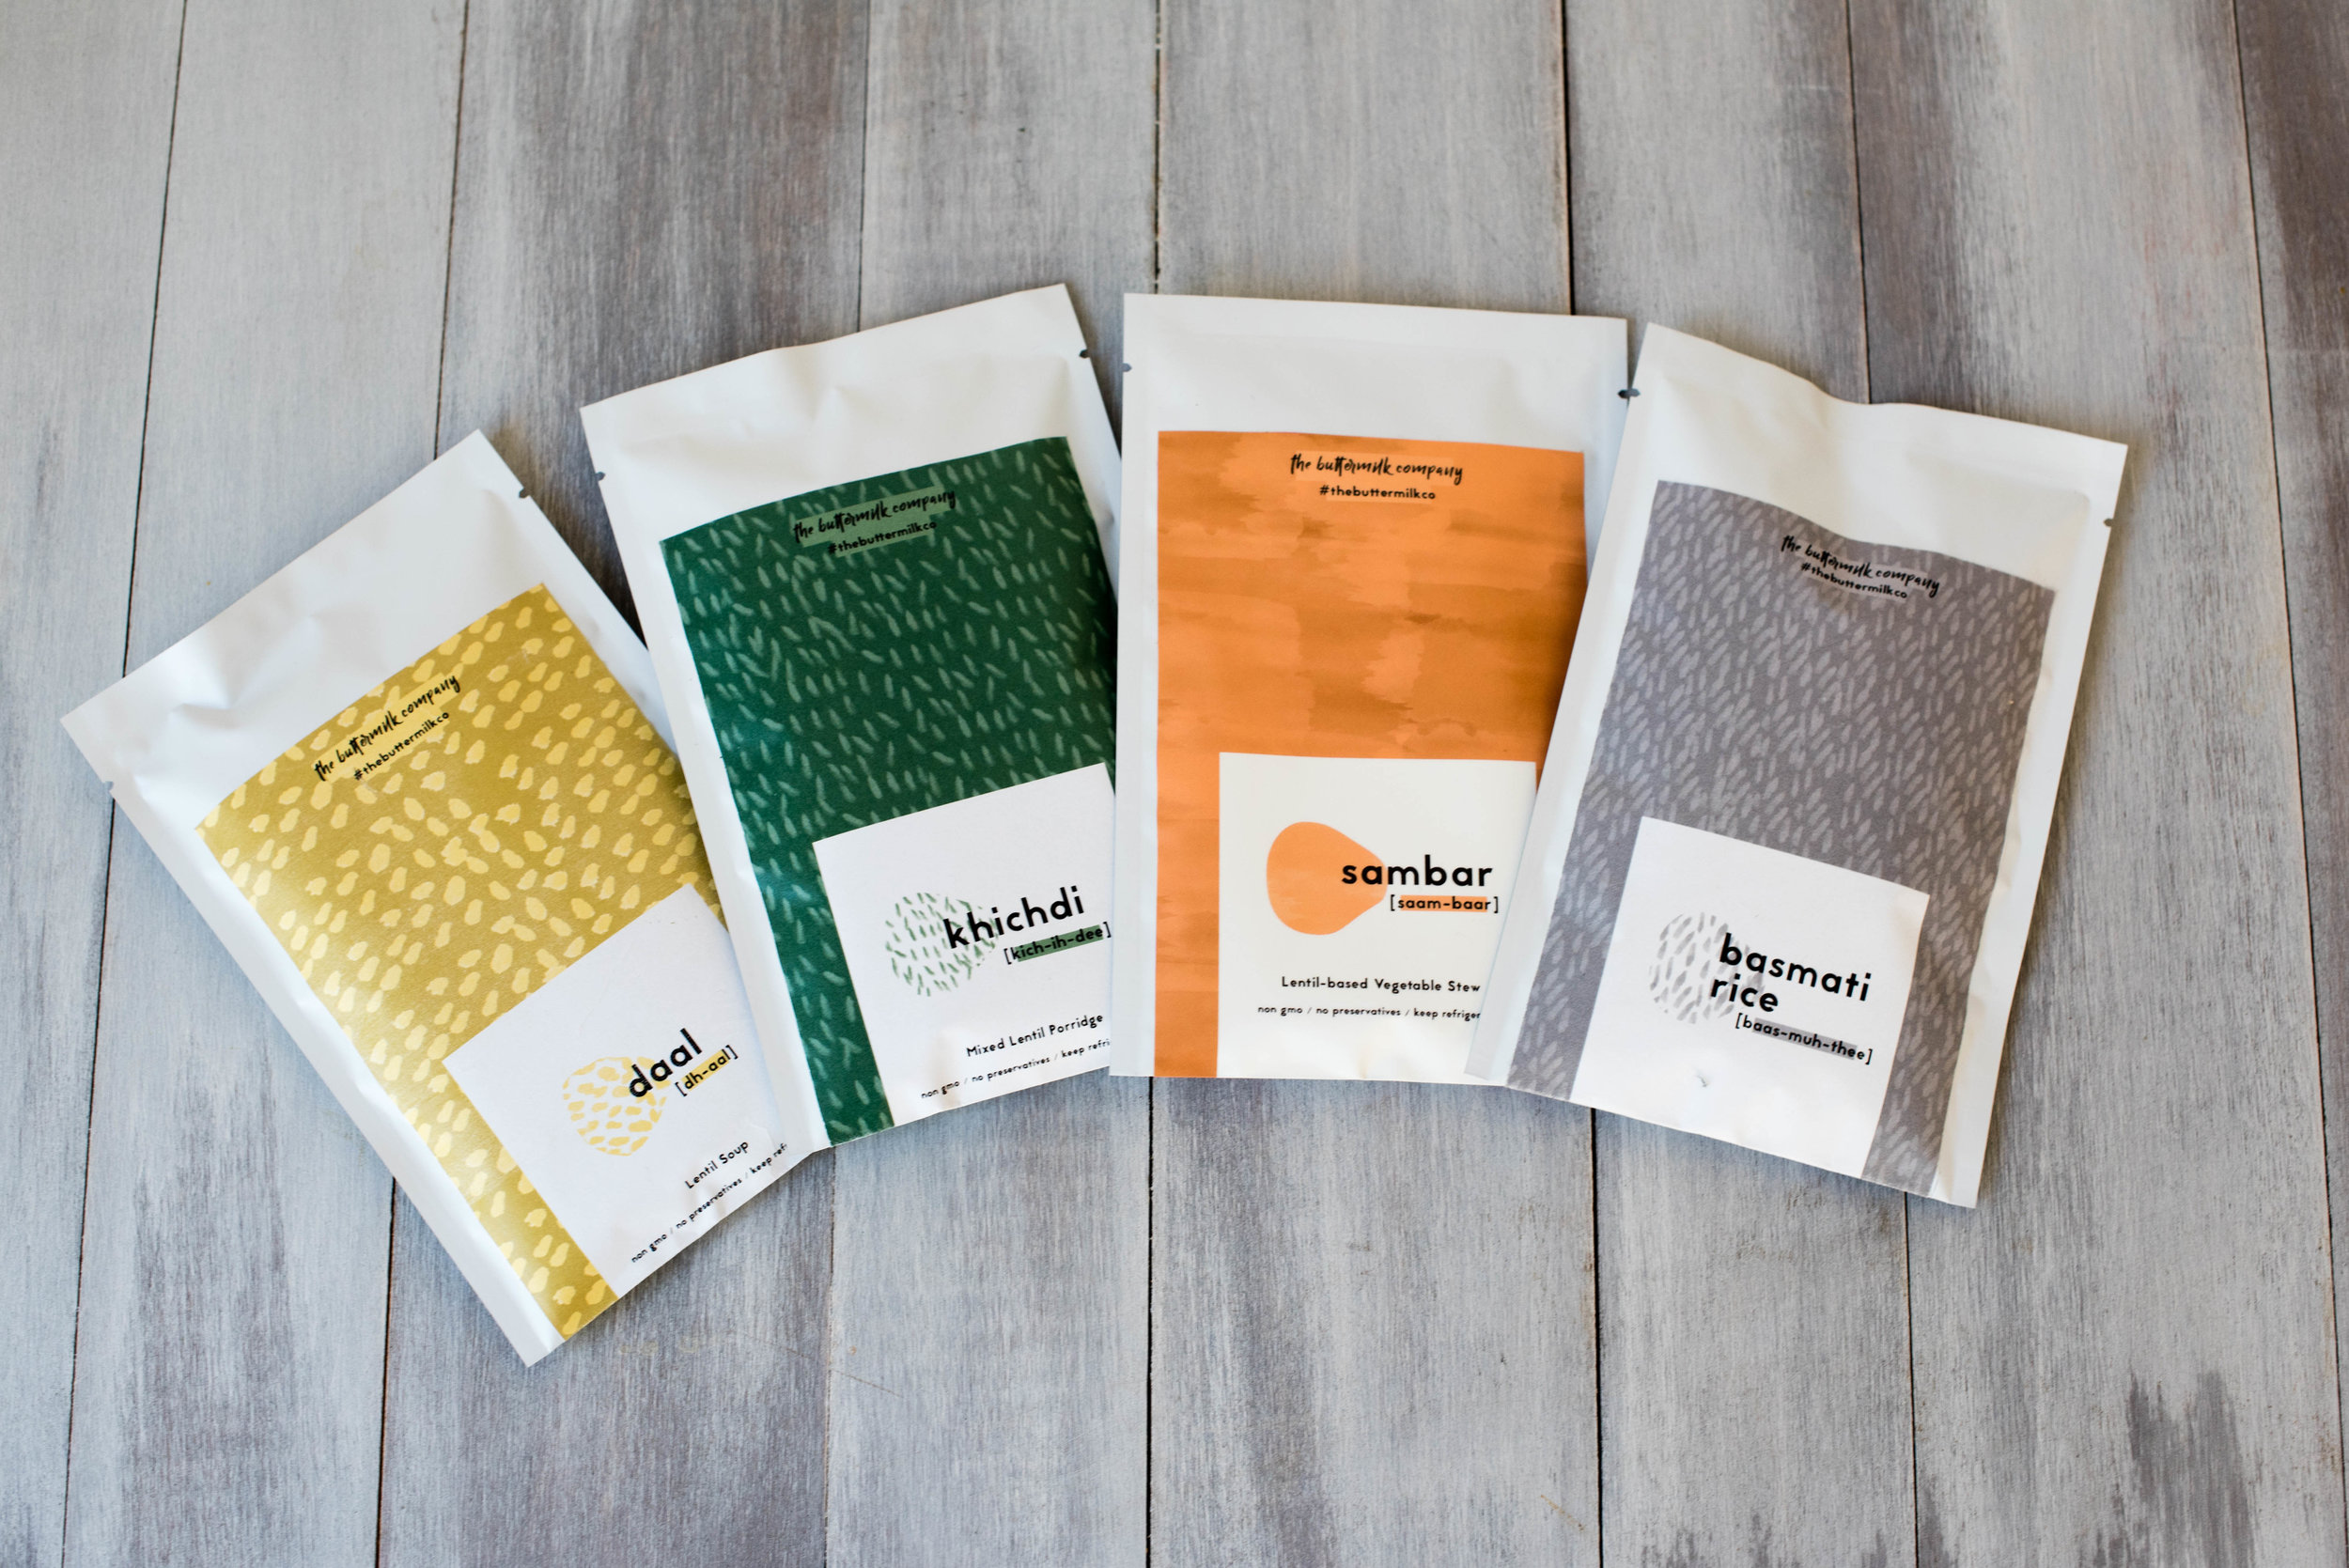 The Buttermilk Company meal packets